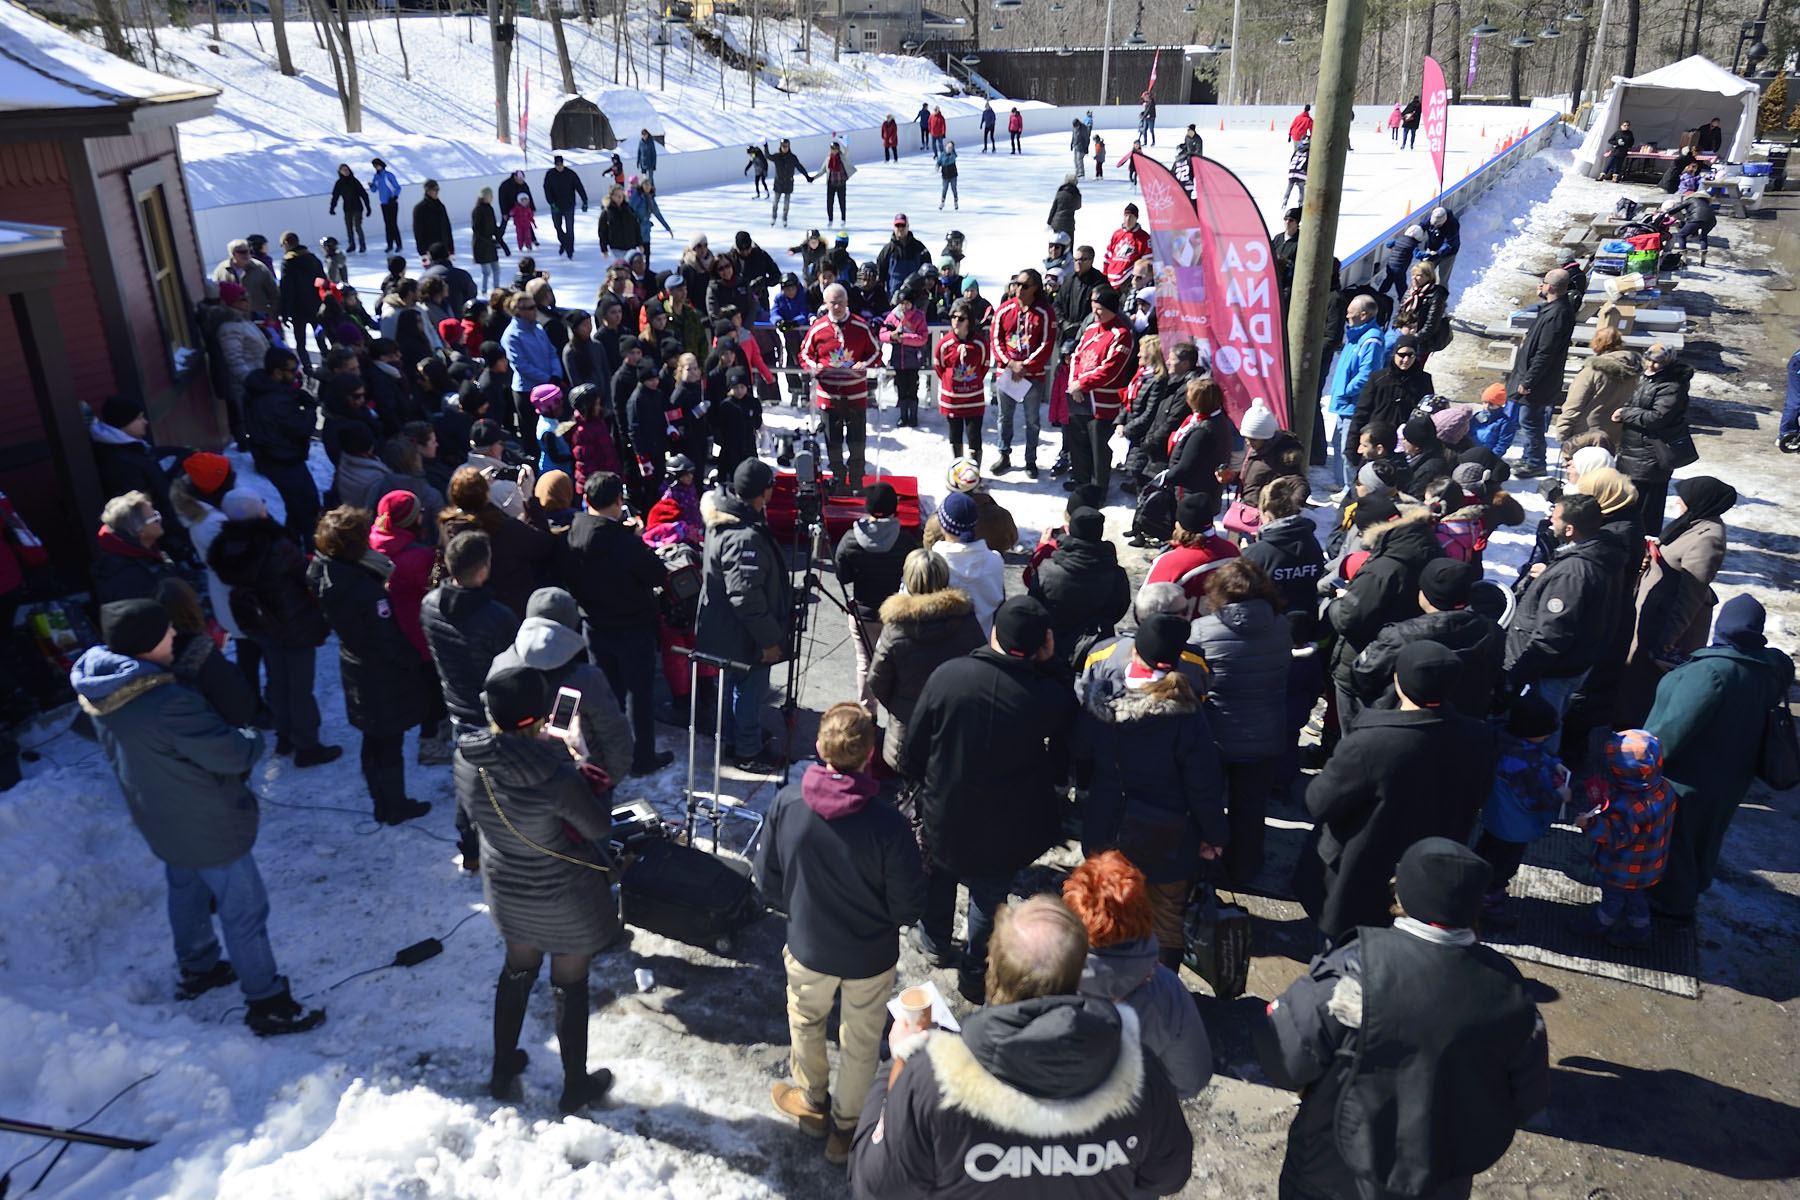 As we are approaching the end of the skating season, His Excellency the Right Honourable David Johnston, Governor General of Canada, hosted a special public event at Rideau Hall's historic skating rink to announce that Canada 150 – Skating Day will take place on December 10, 2017.